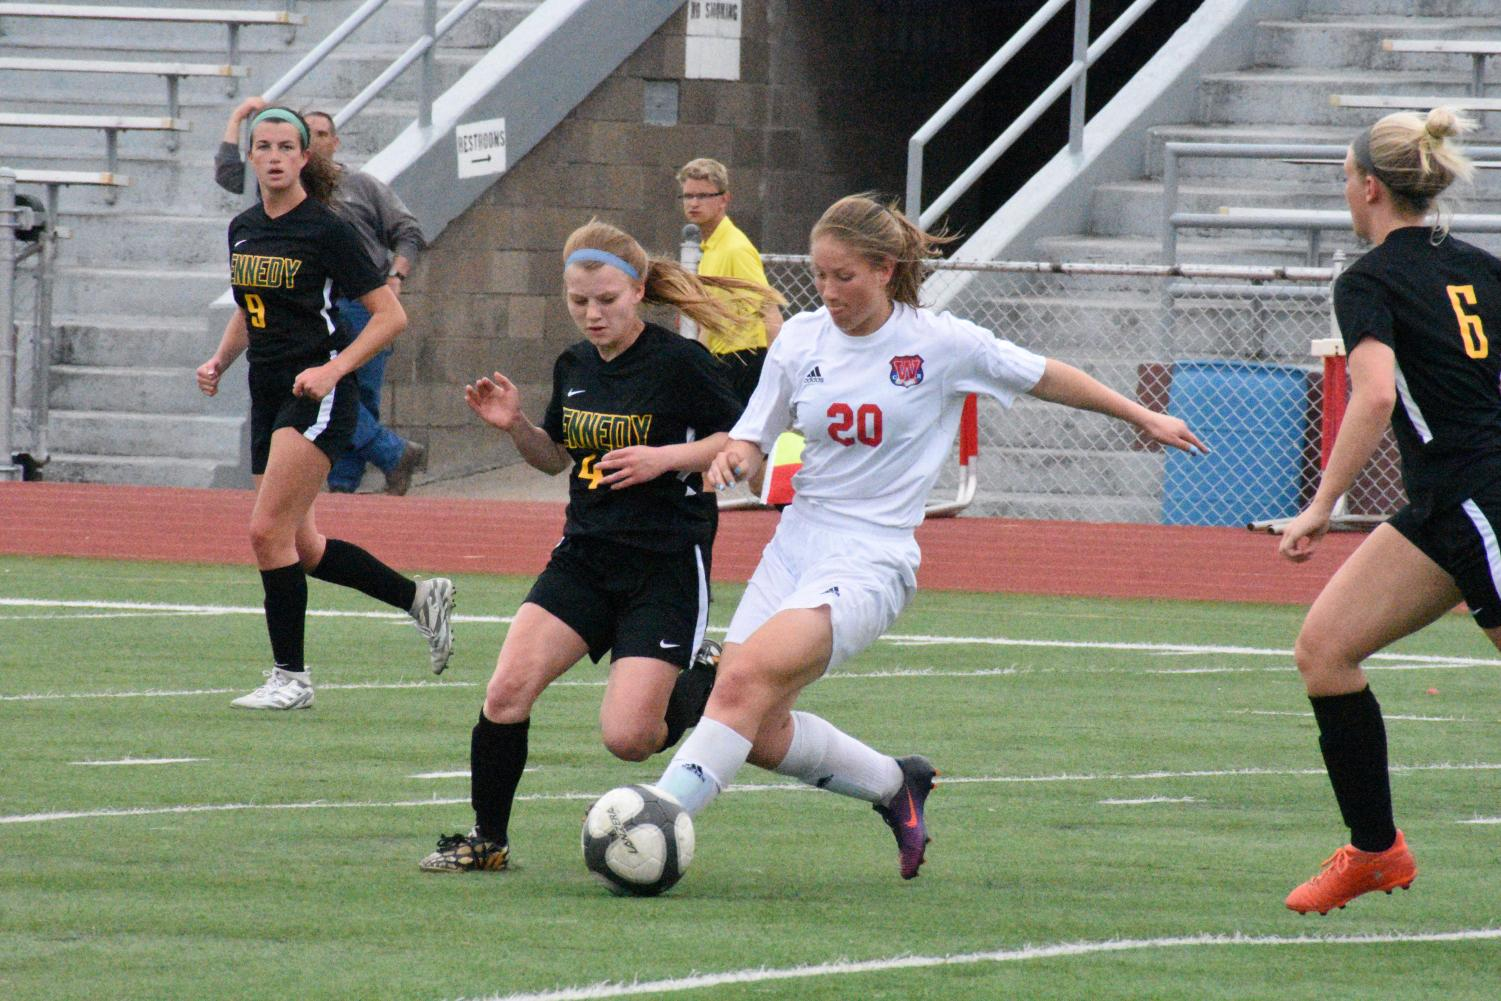 Hannah Mundell, sr., trying to steal the ball from Washington, to pass to Dekko.